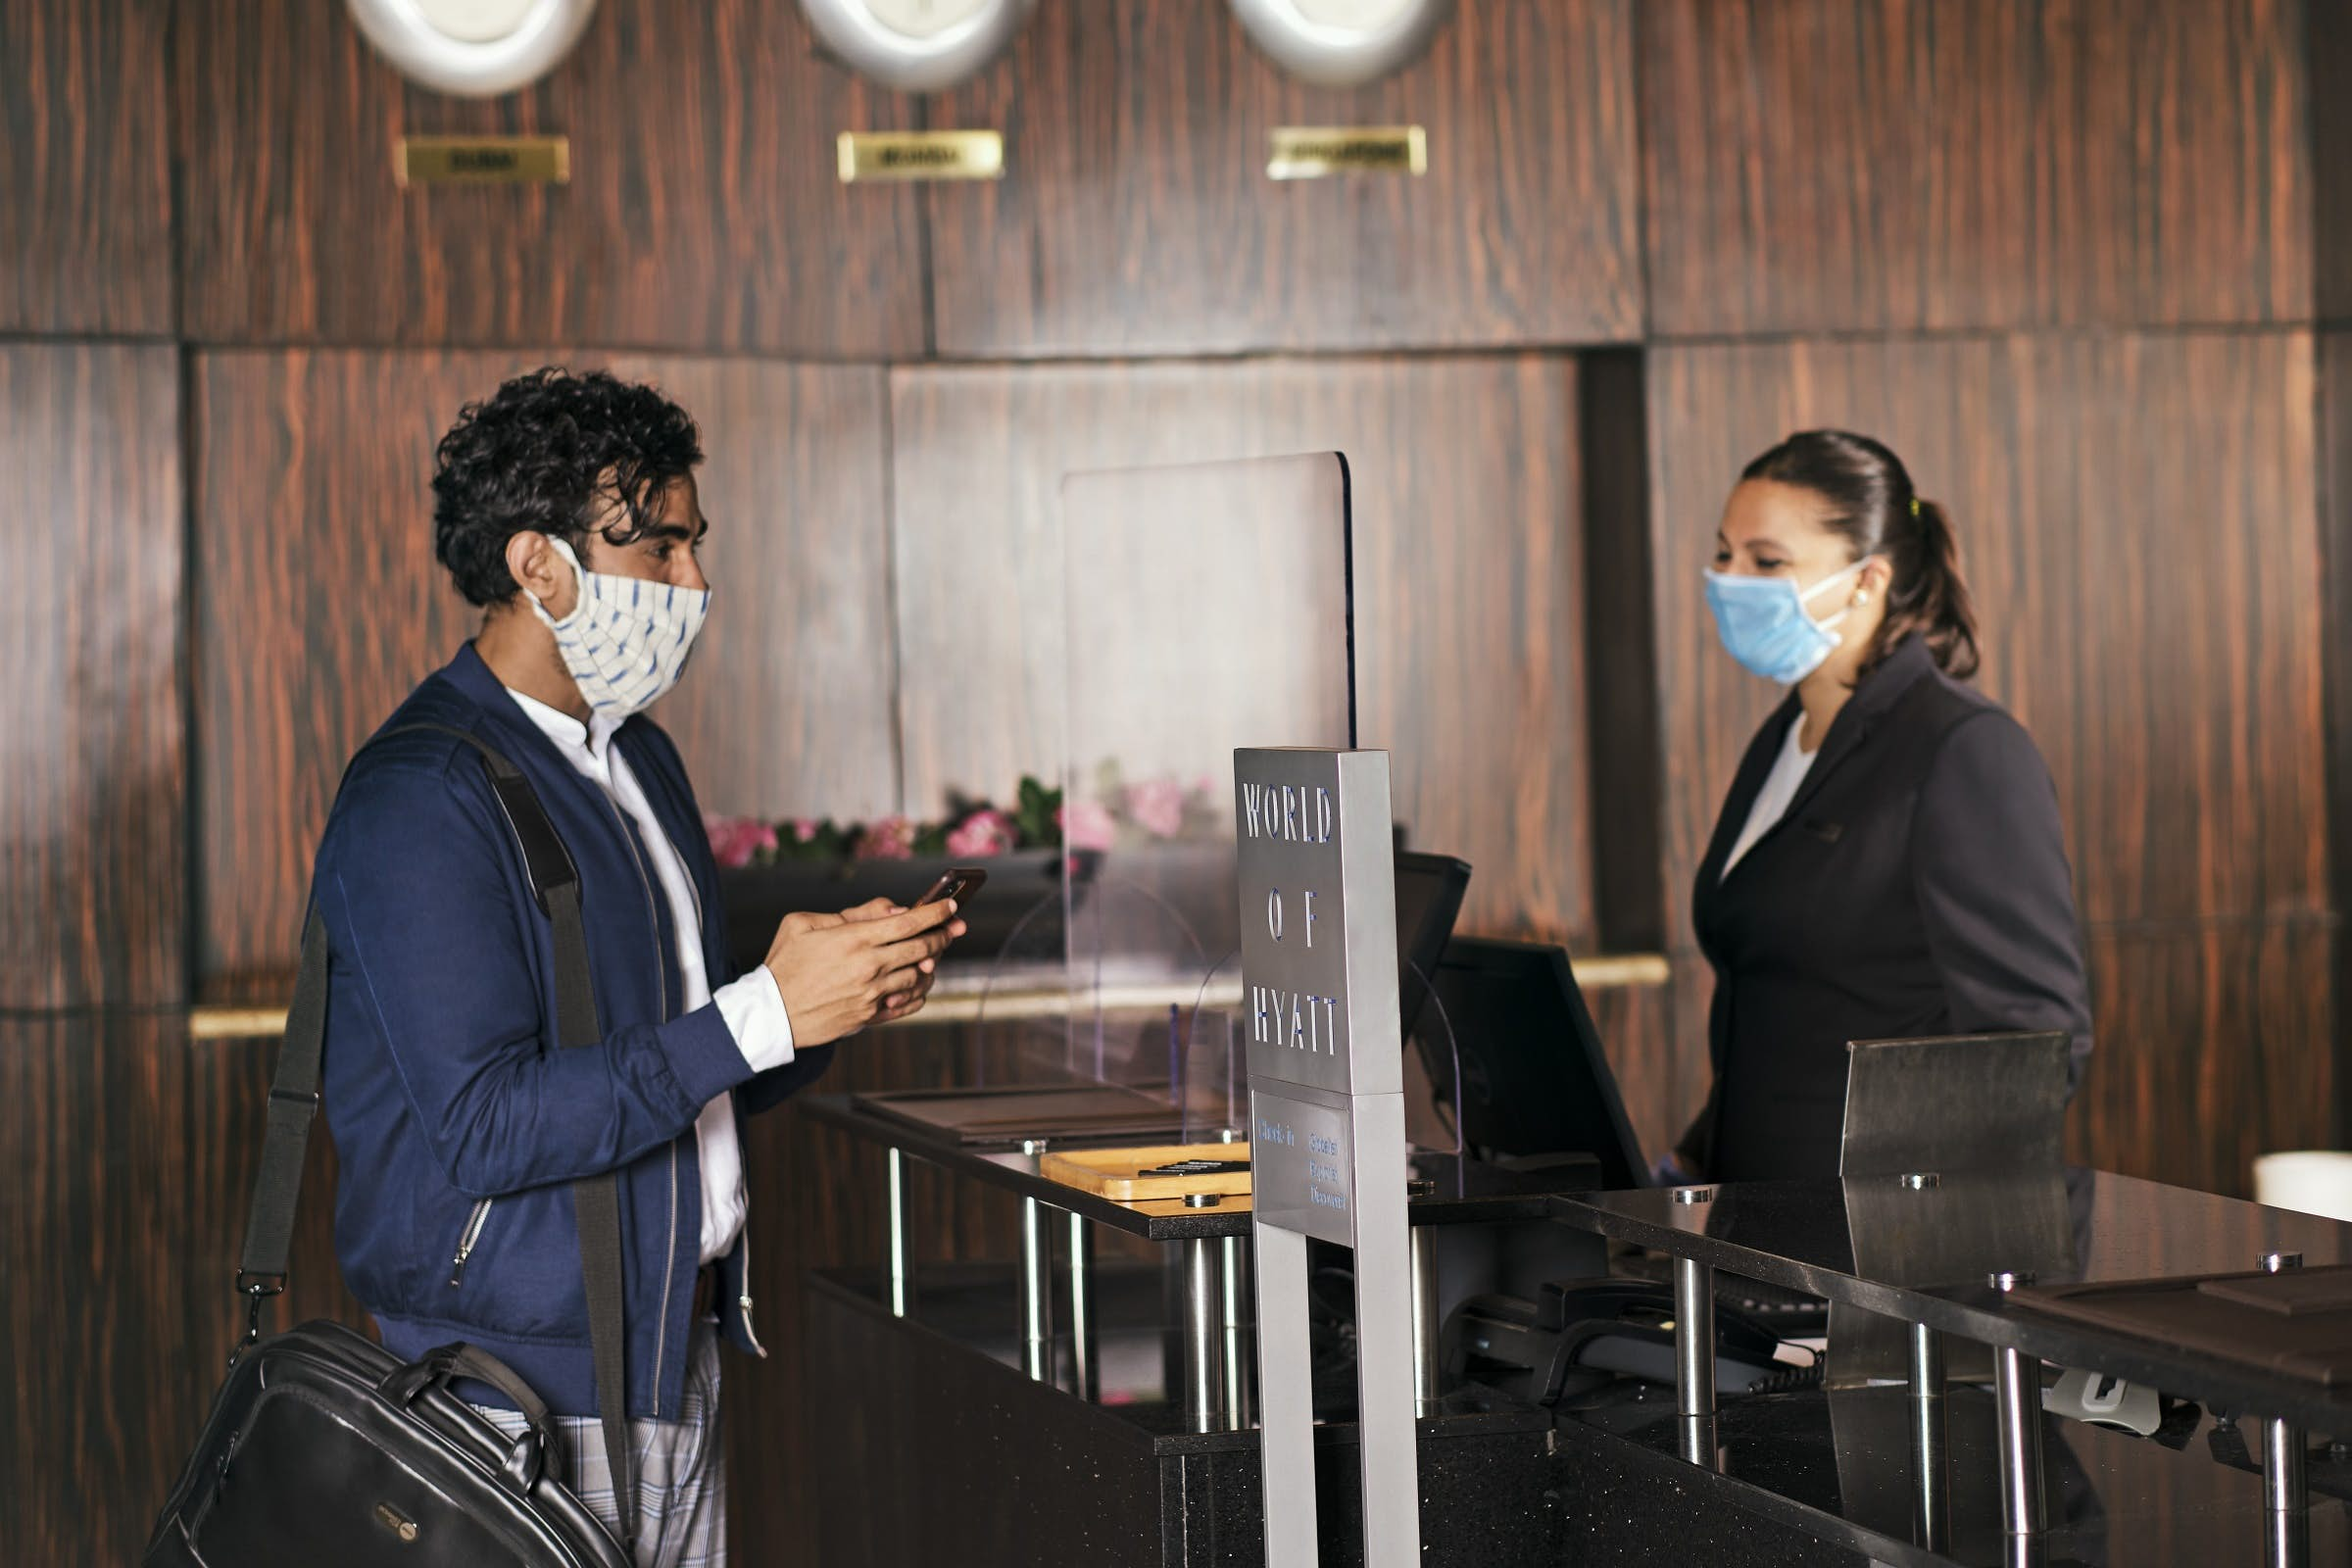 Checking in a hotel post-COVID: Reimagining hospitality - Lonely Planet